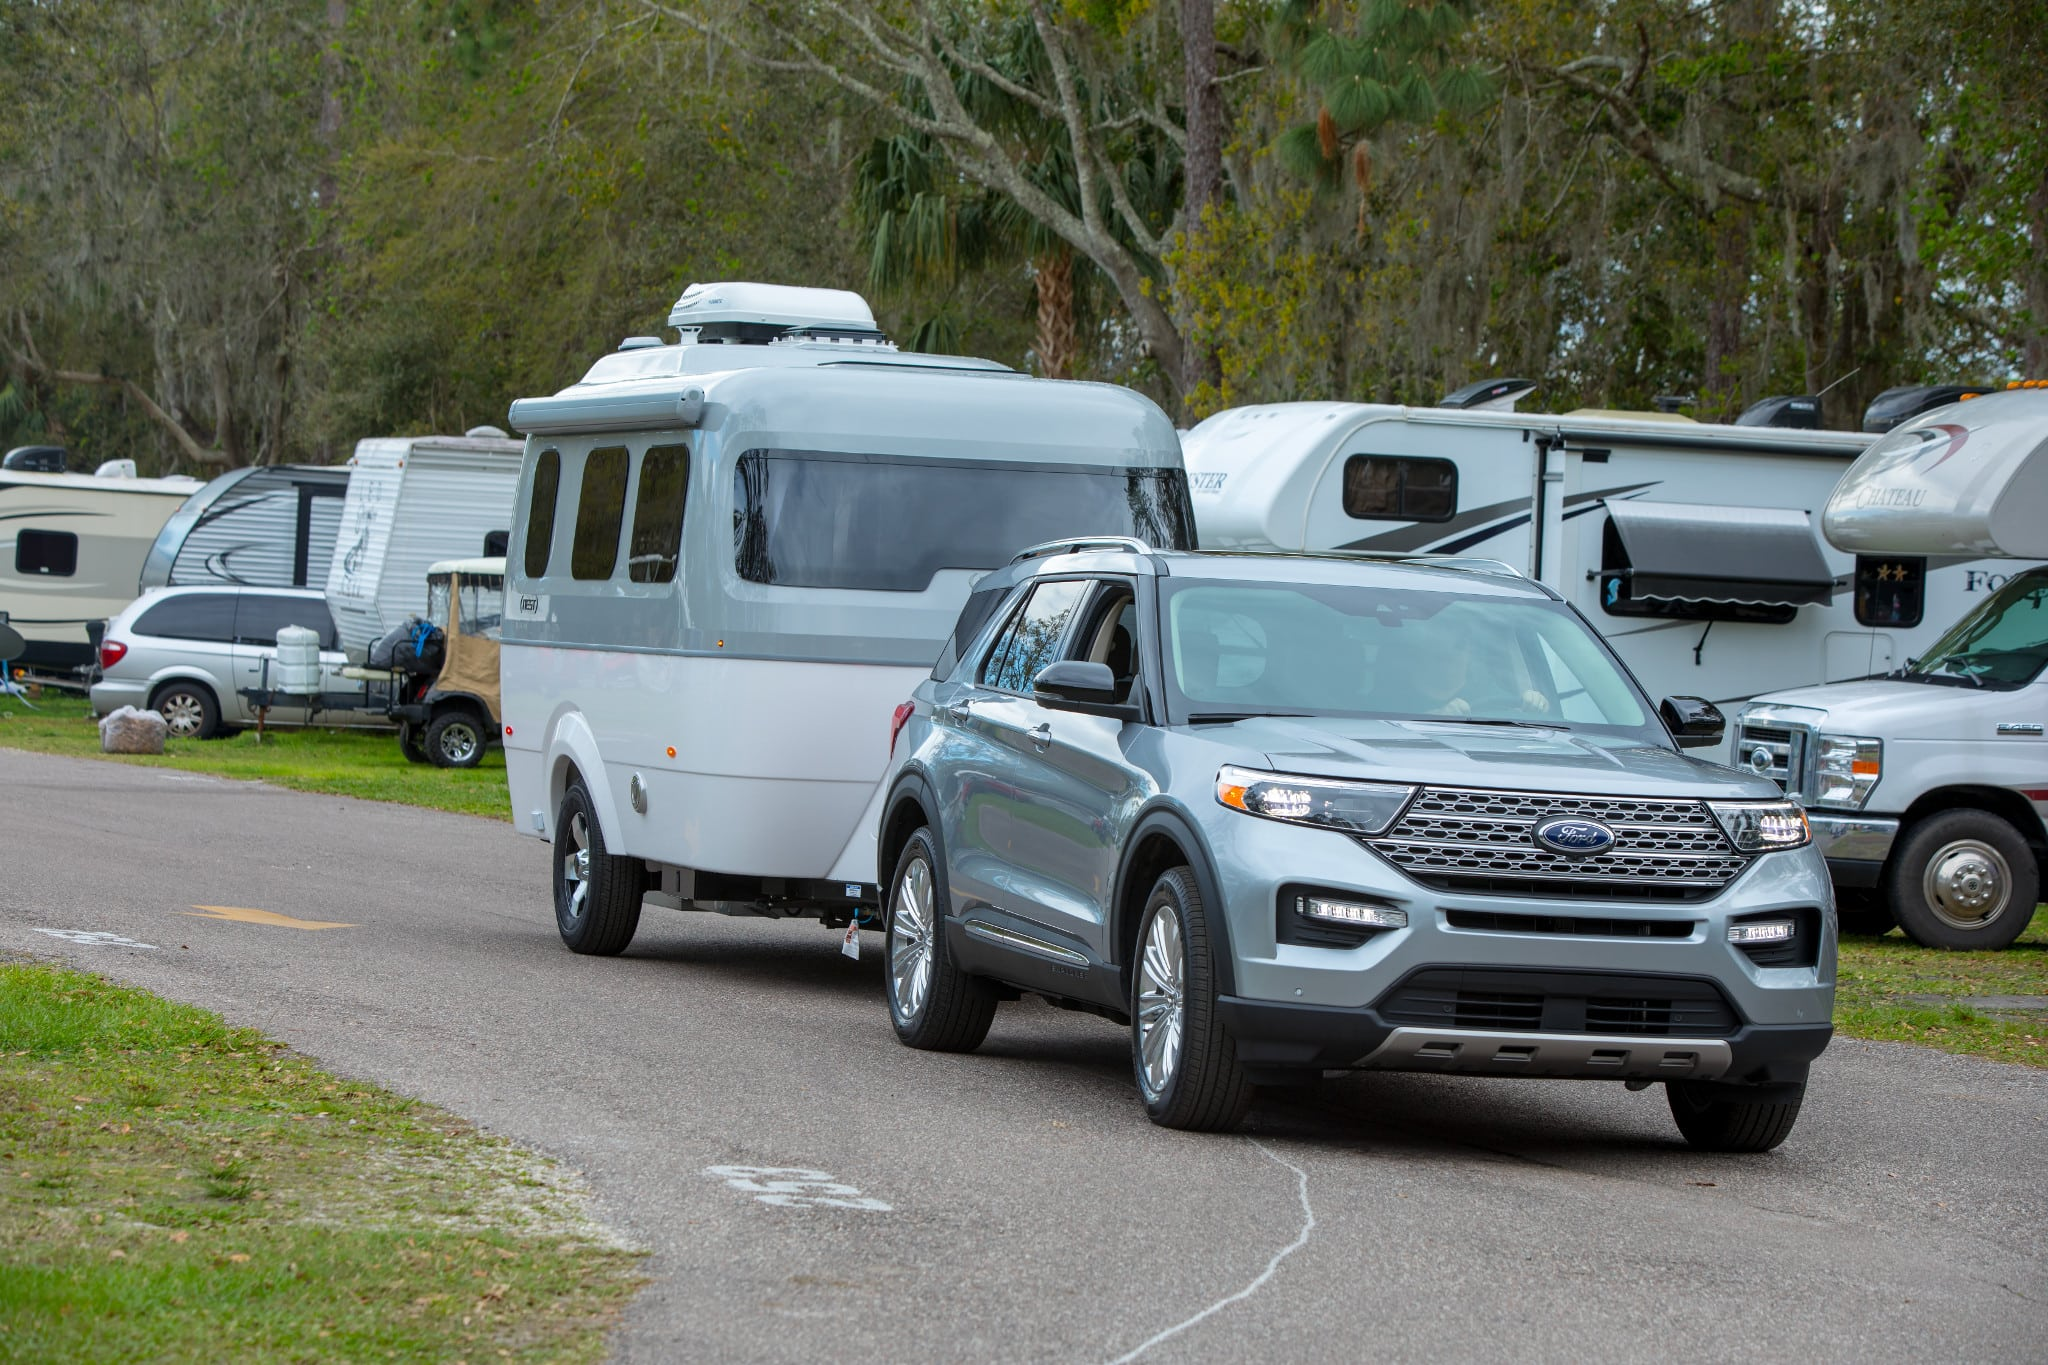 The Ultimate Checklist for Buying a Pre-Owned RV - Camping World